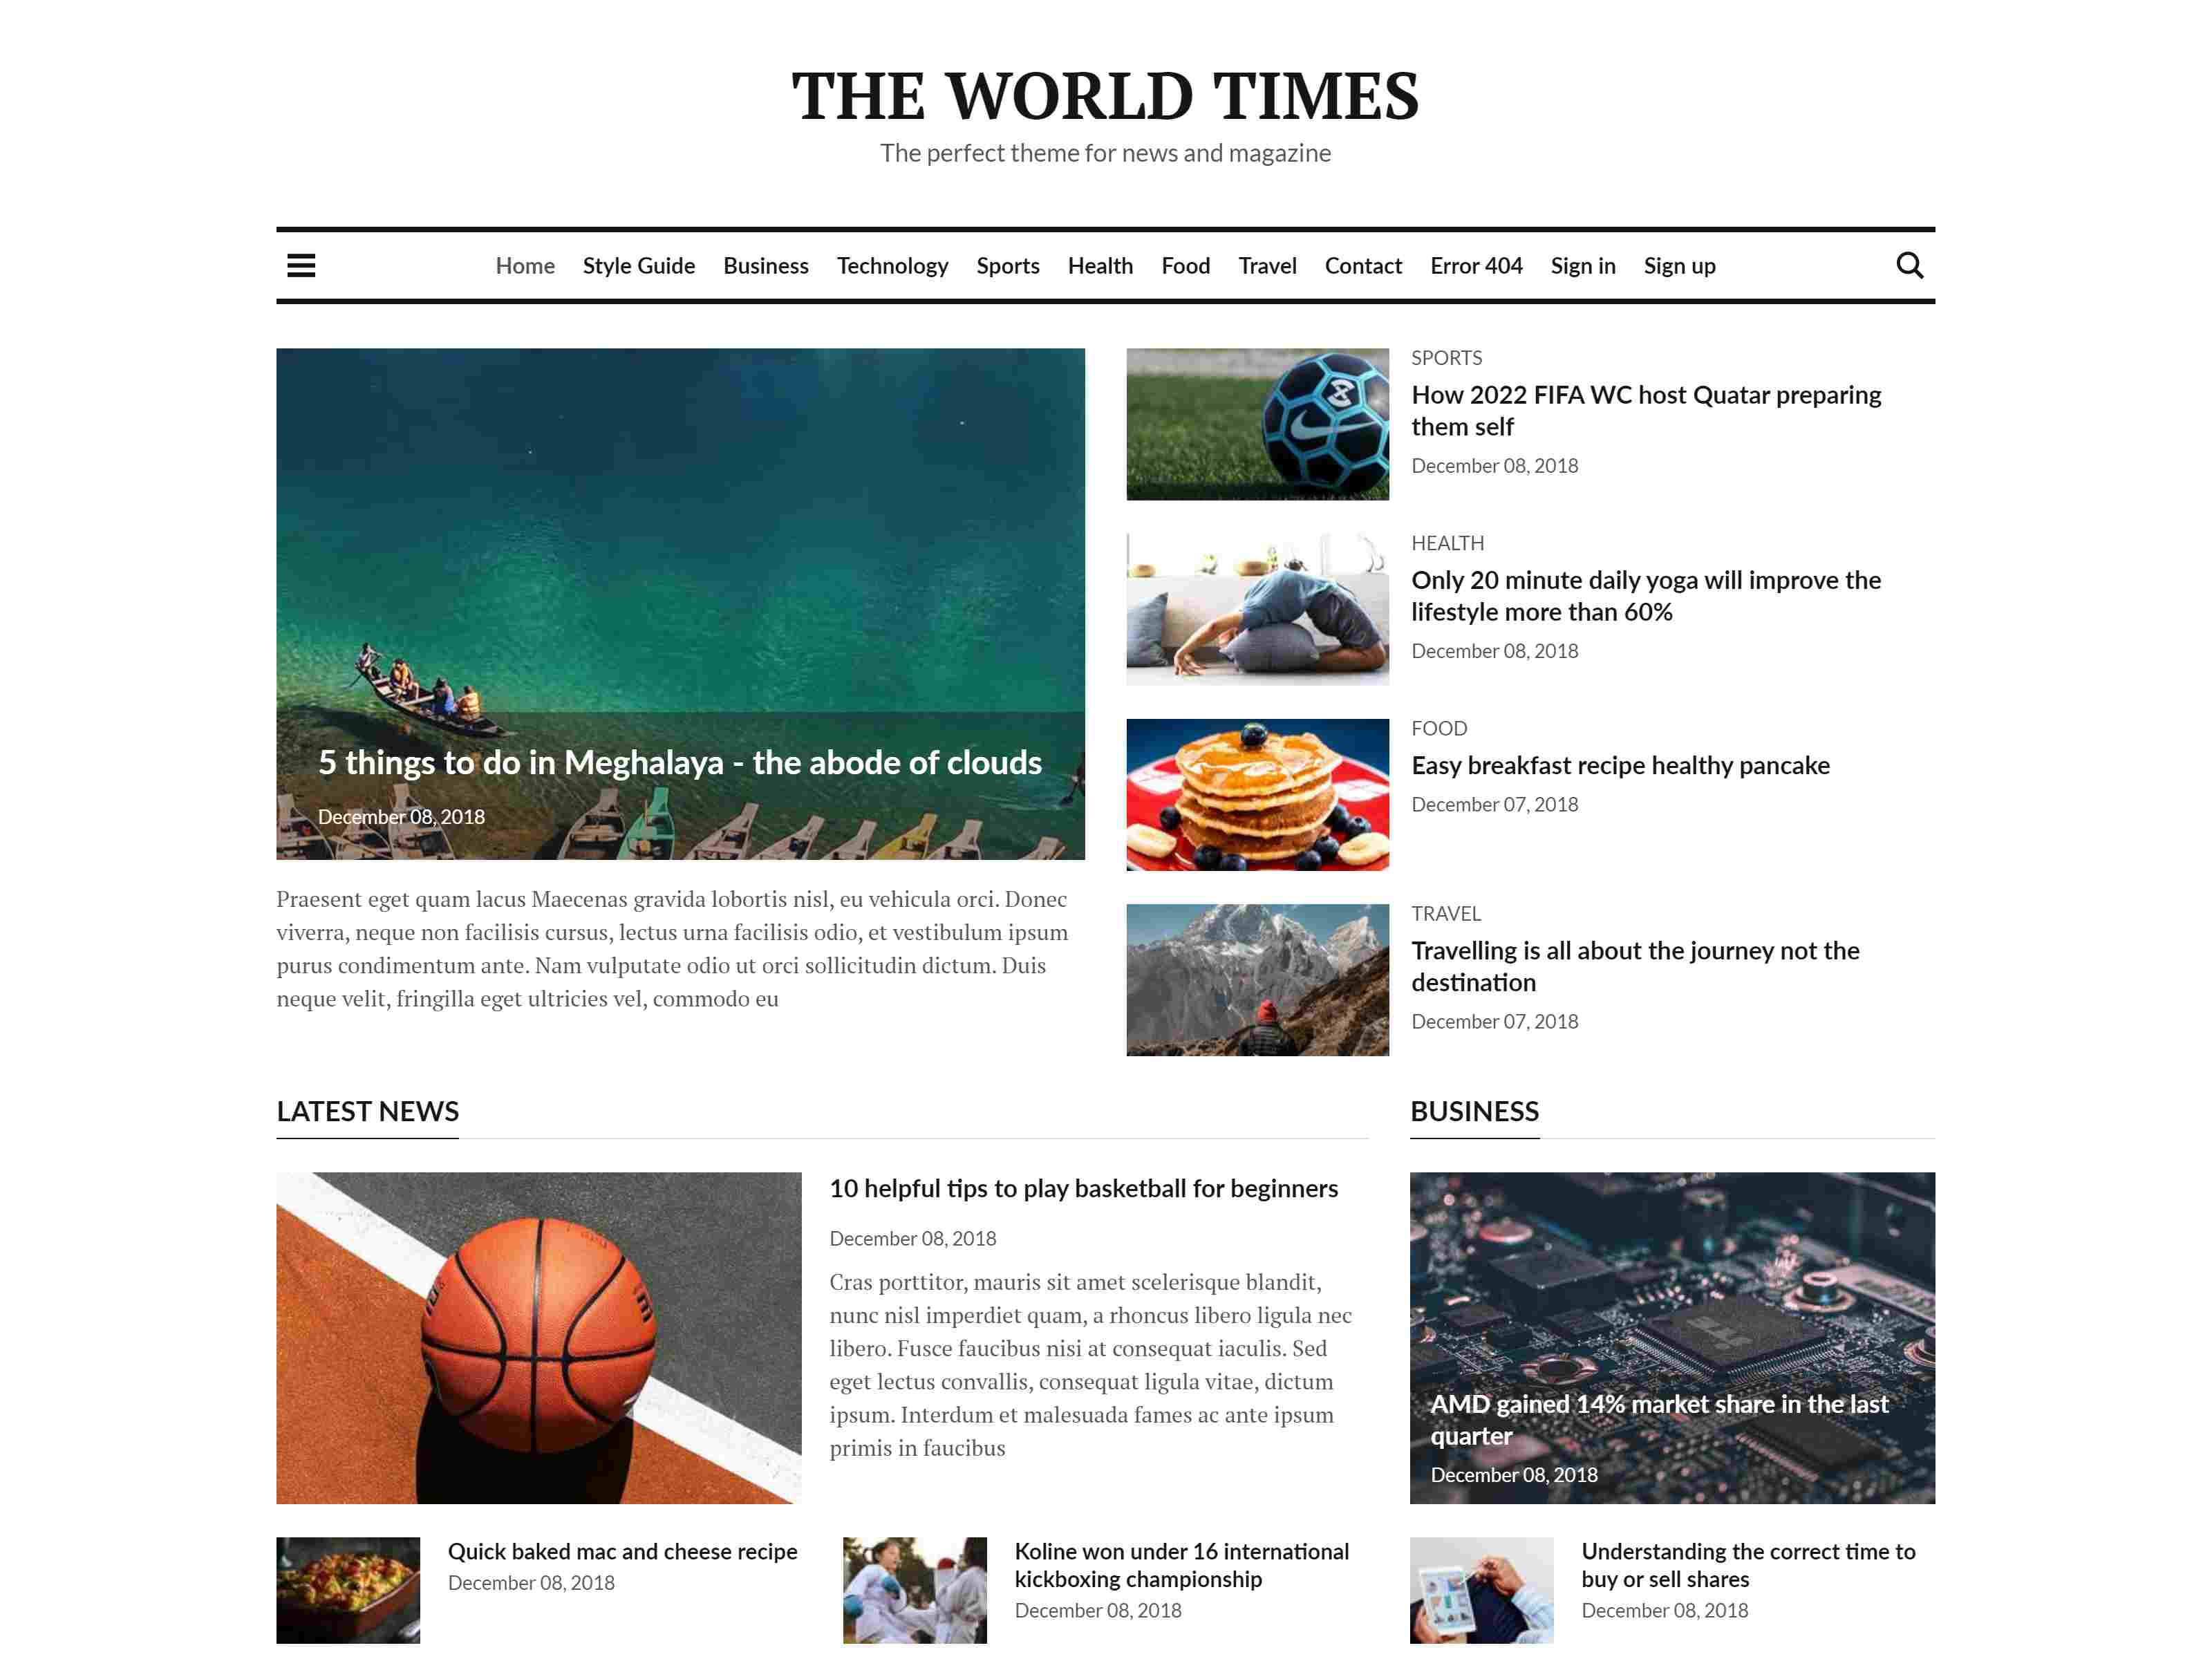 World Times - Newspaper & Magazine Style Ghost Blog Theme ghost themes